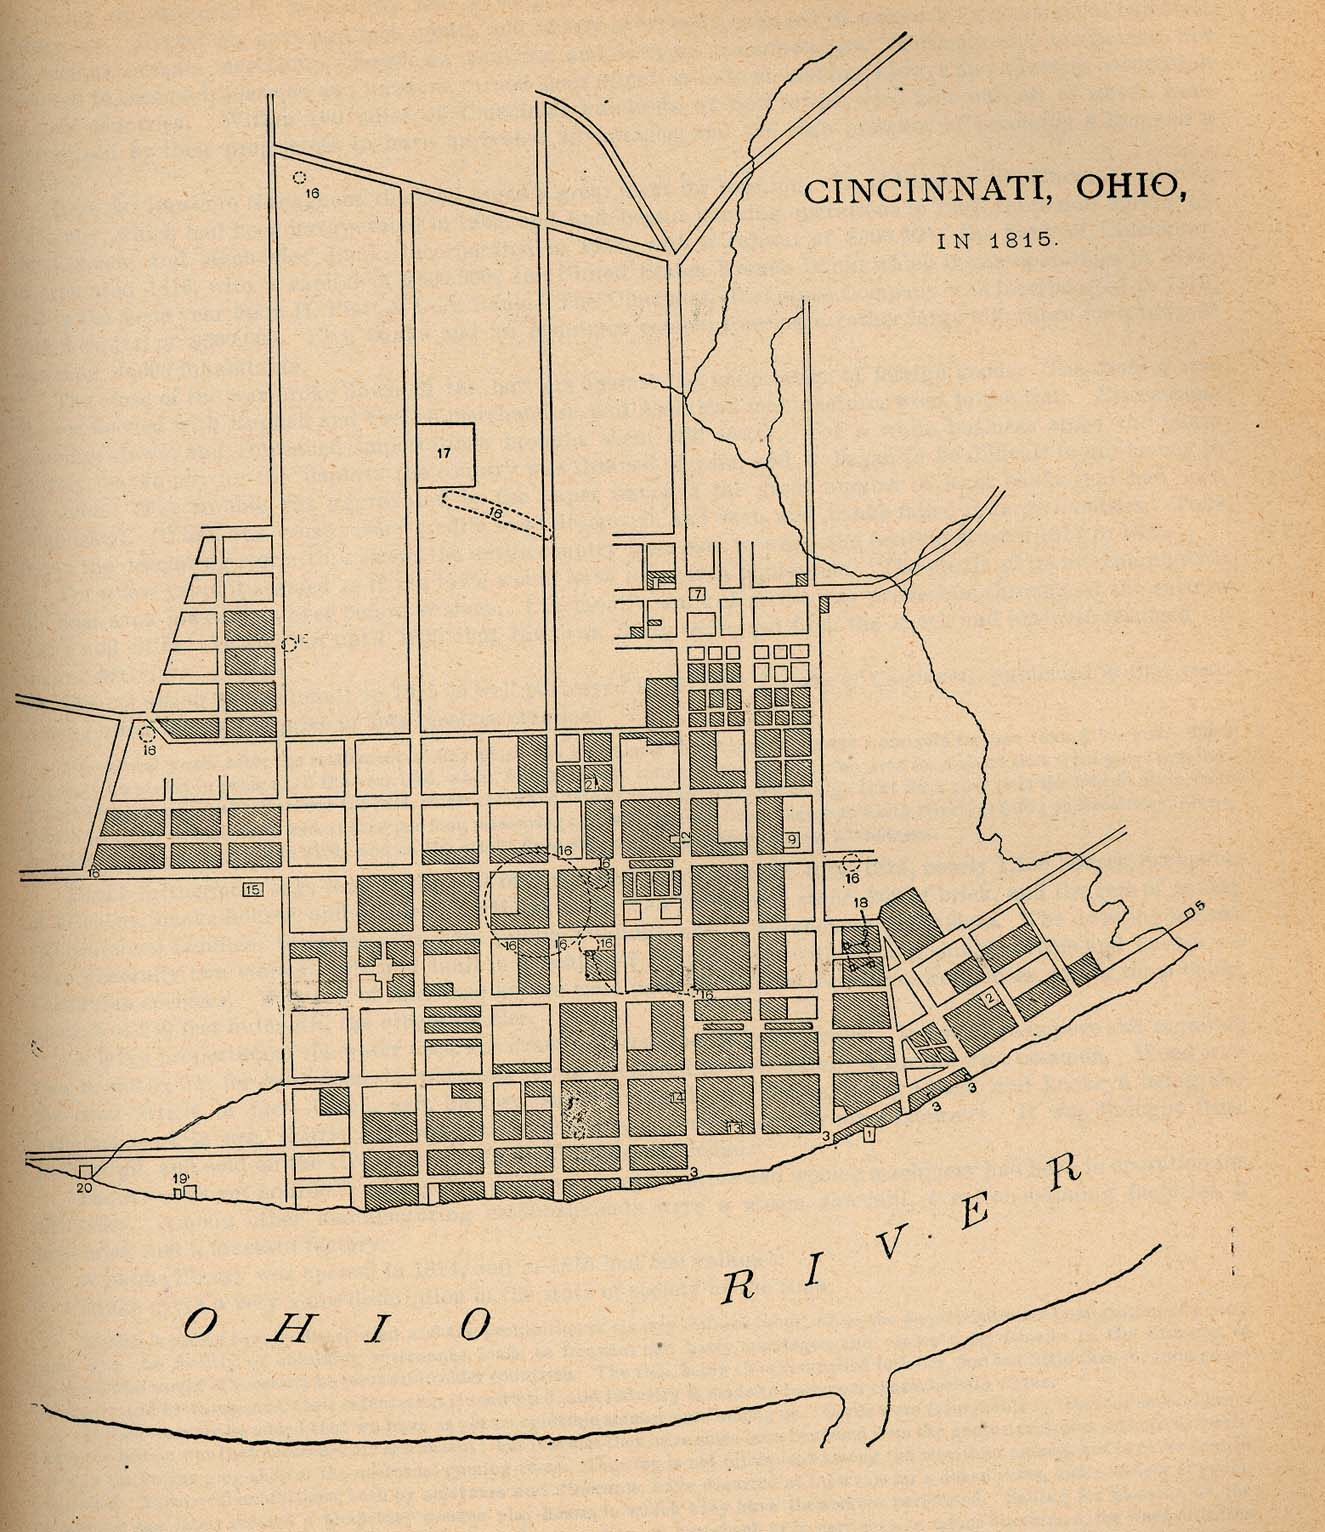 Cincinnati City Map, Ohio, United States 1815